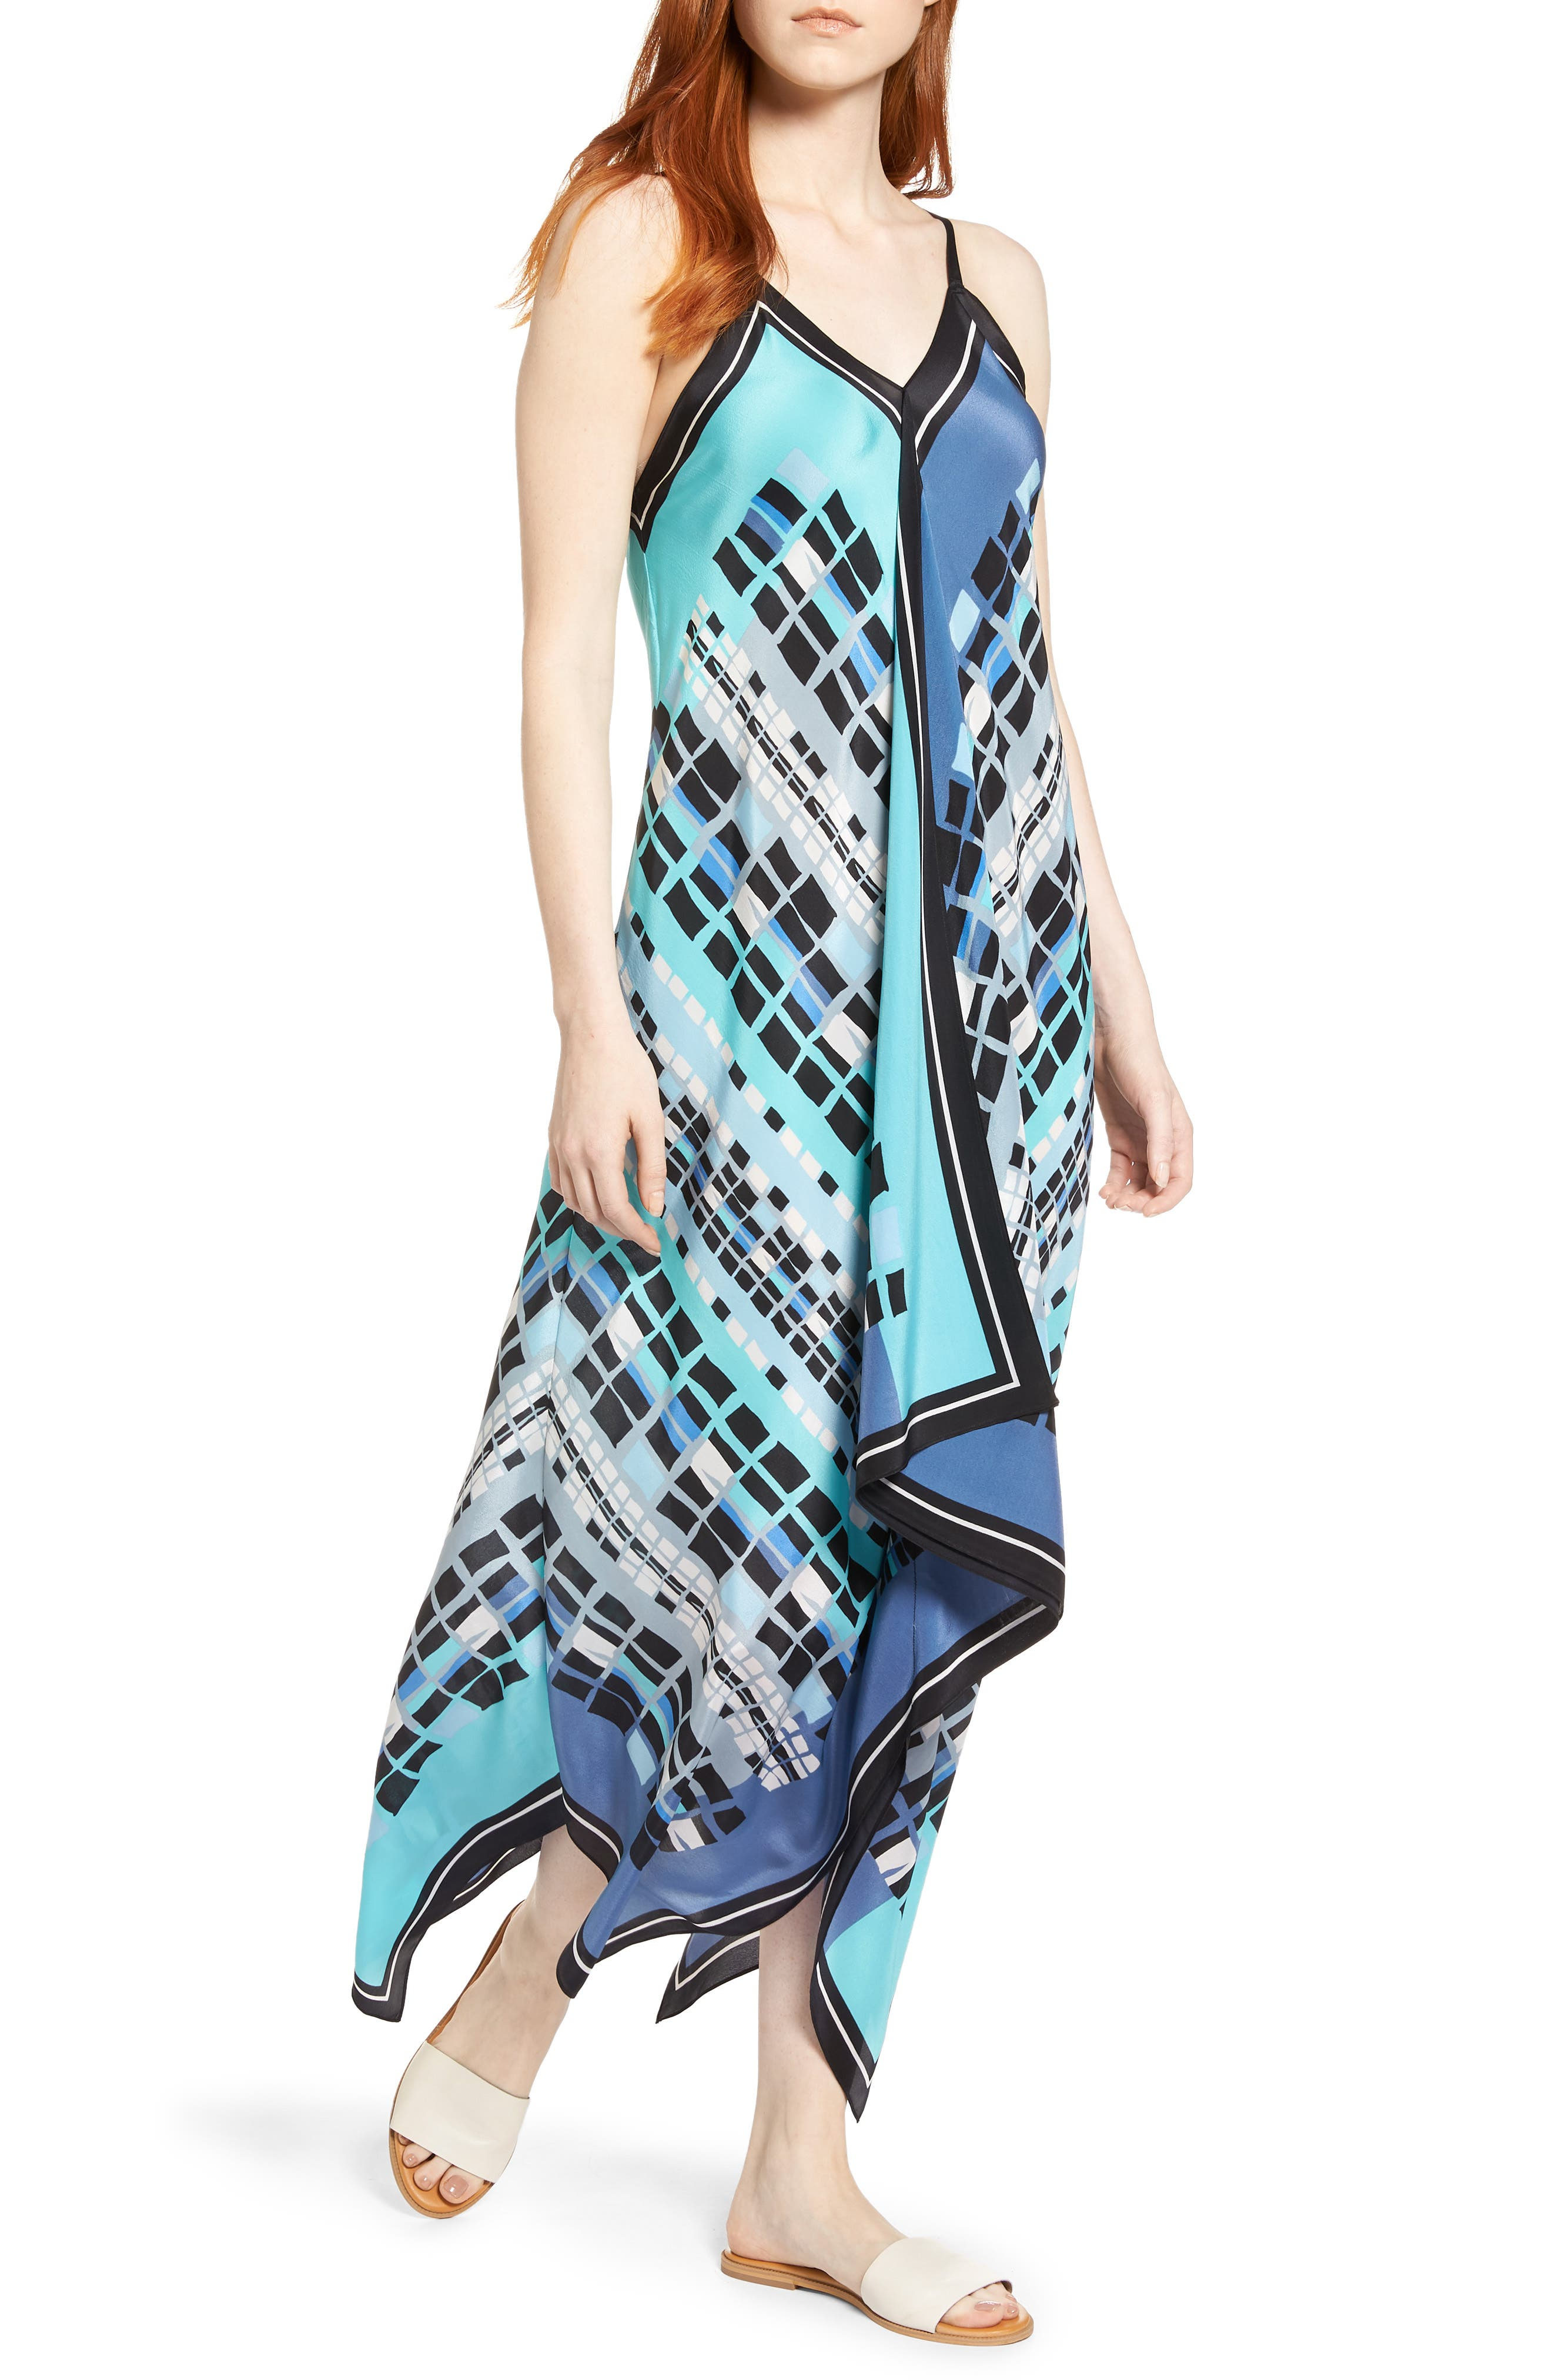 From Above Dress Silk Blend Maxi Dress,                         Main,                         color, Multi